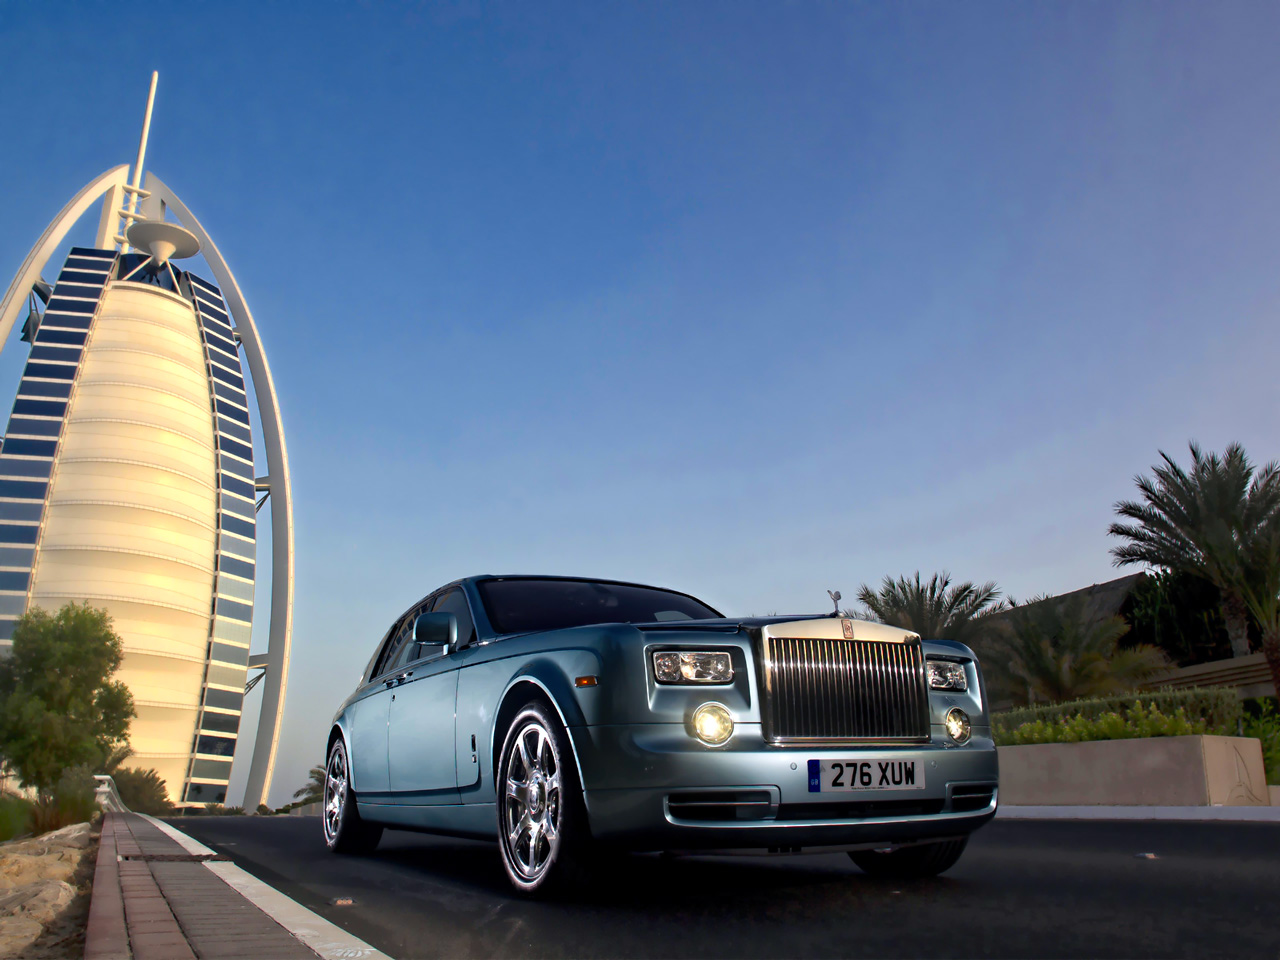 Gold Class Lane For Luxury Cars To Be Introduced In Dubai